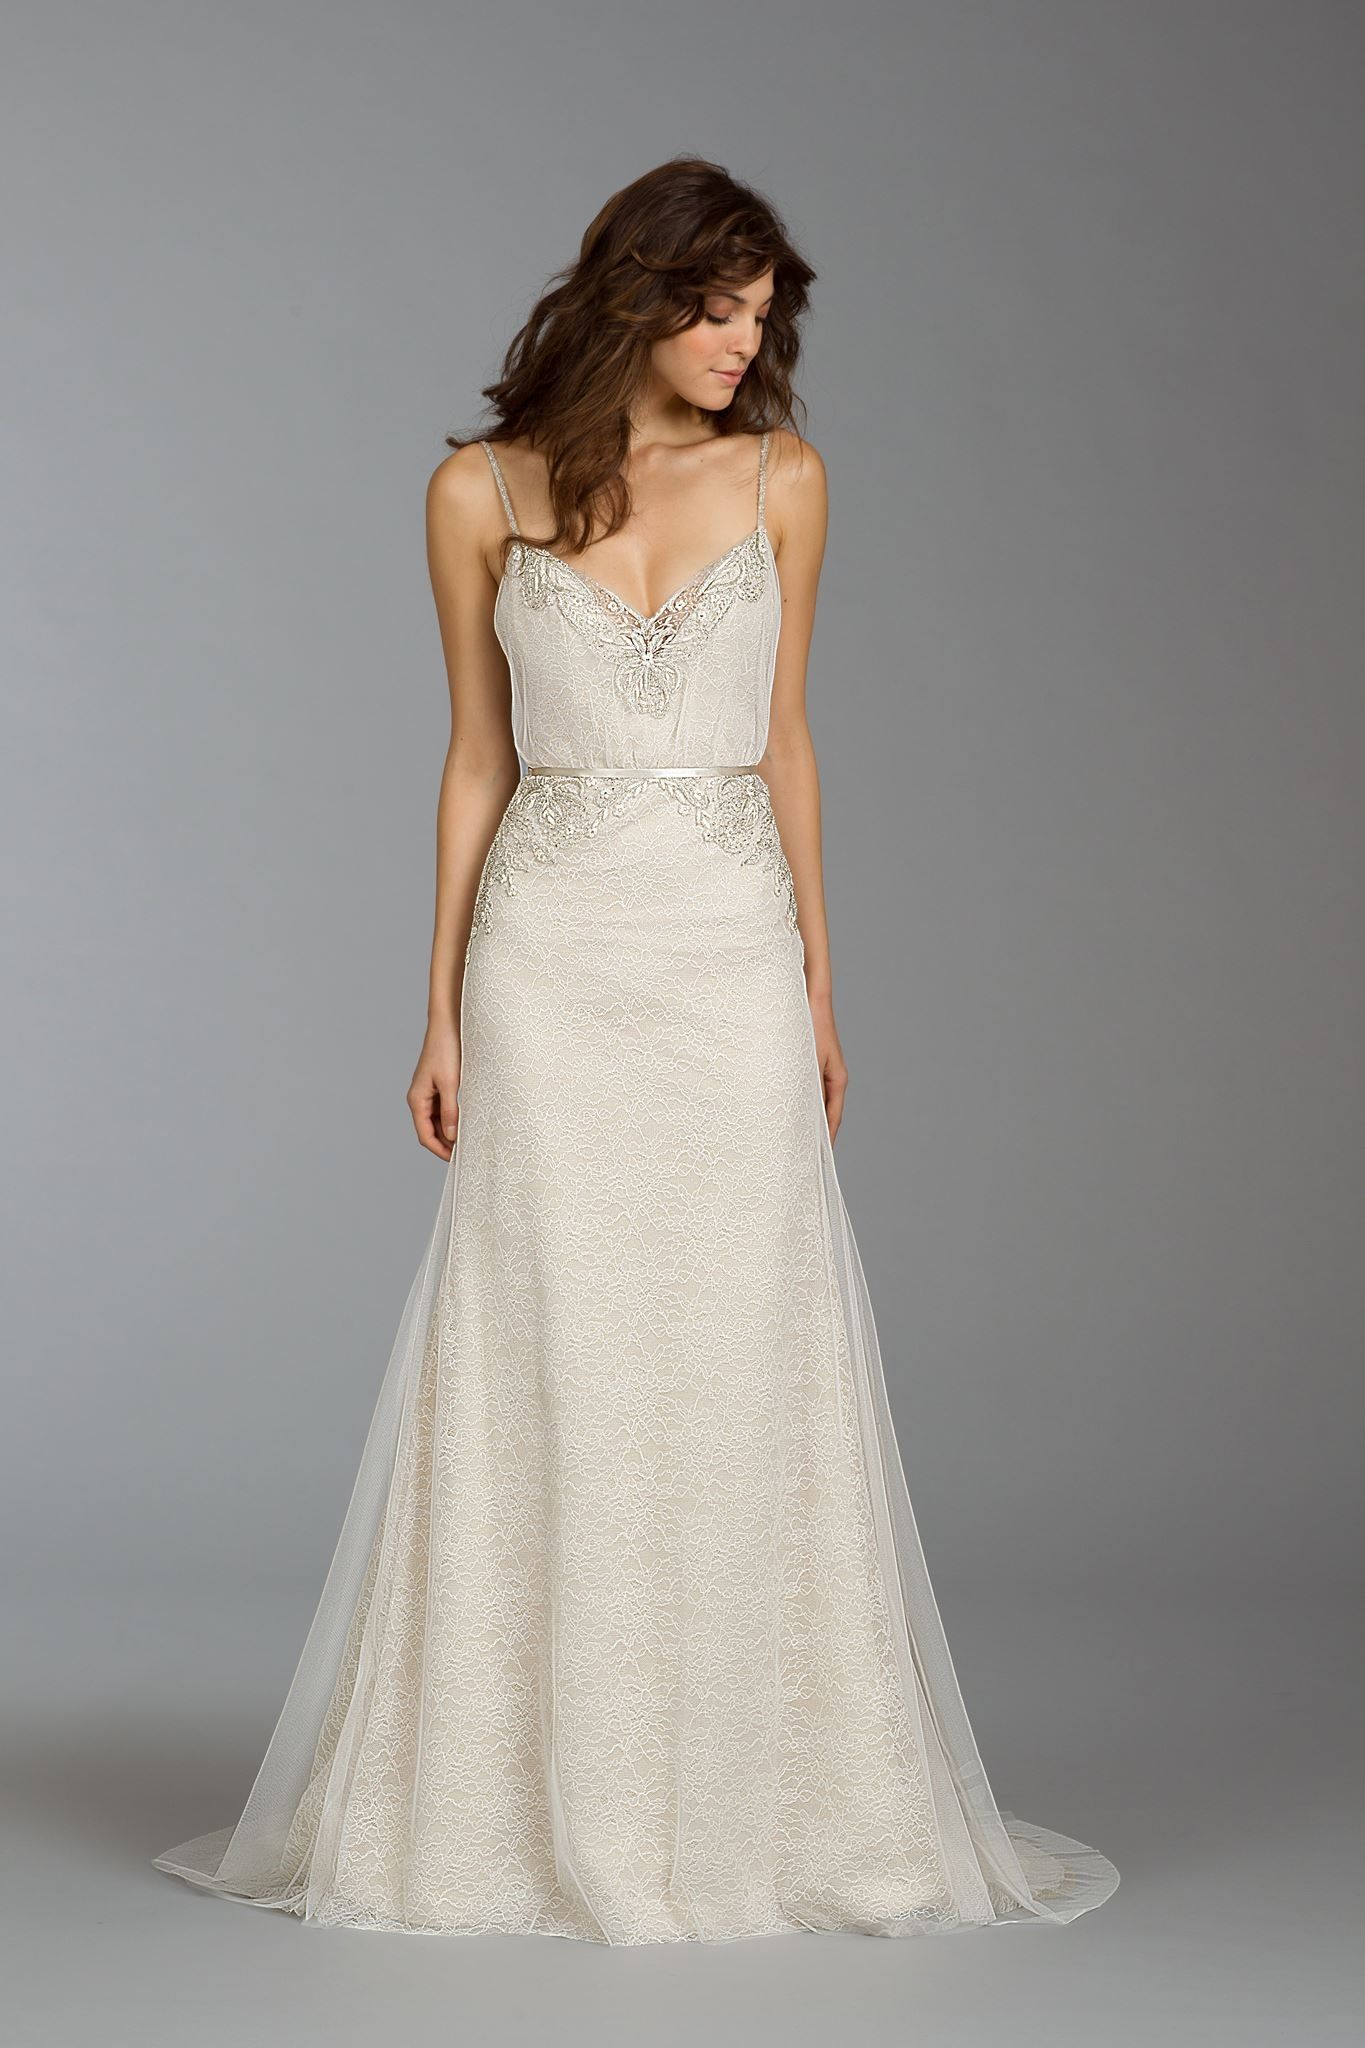 Simple And Delicate Bone Color Wedding Dress